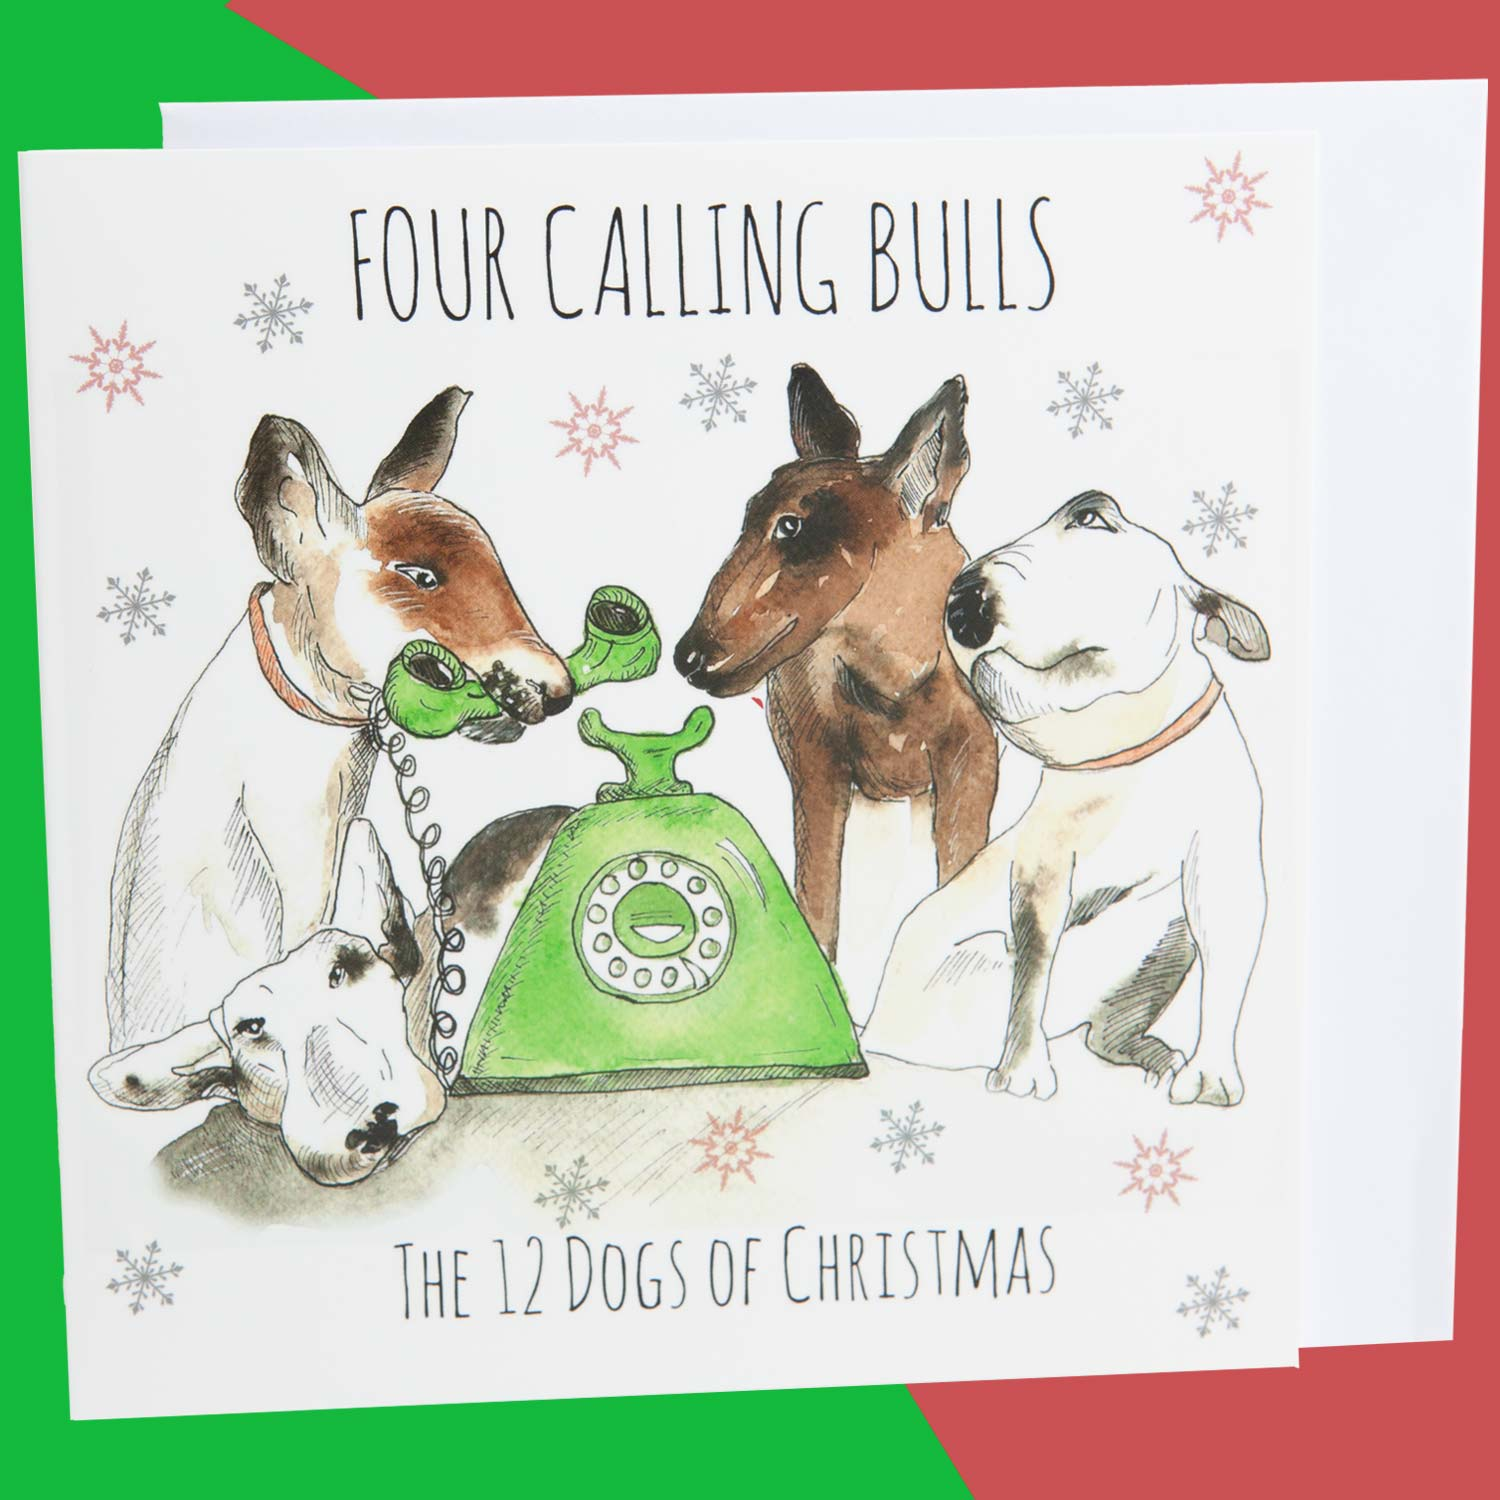 Dog Krazy Gifts - Four Calling Bulls - Part of the 12 Dogs of Christmas card collection available from DogKrazyGifts.co.uk